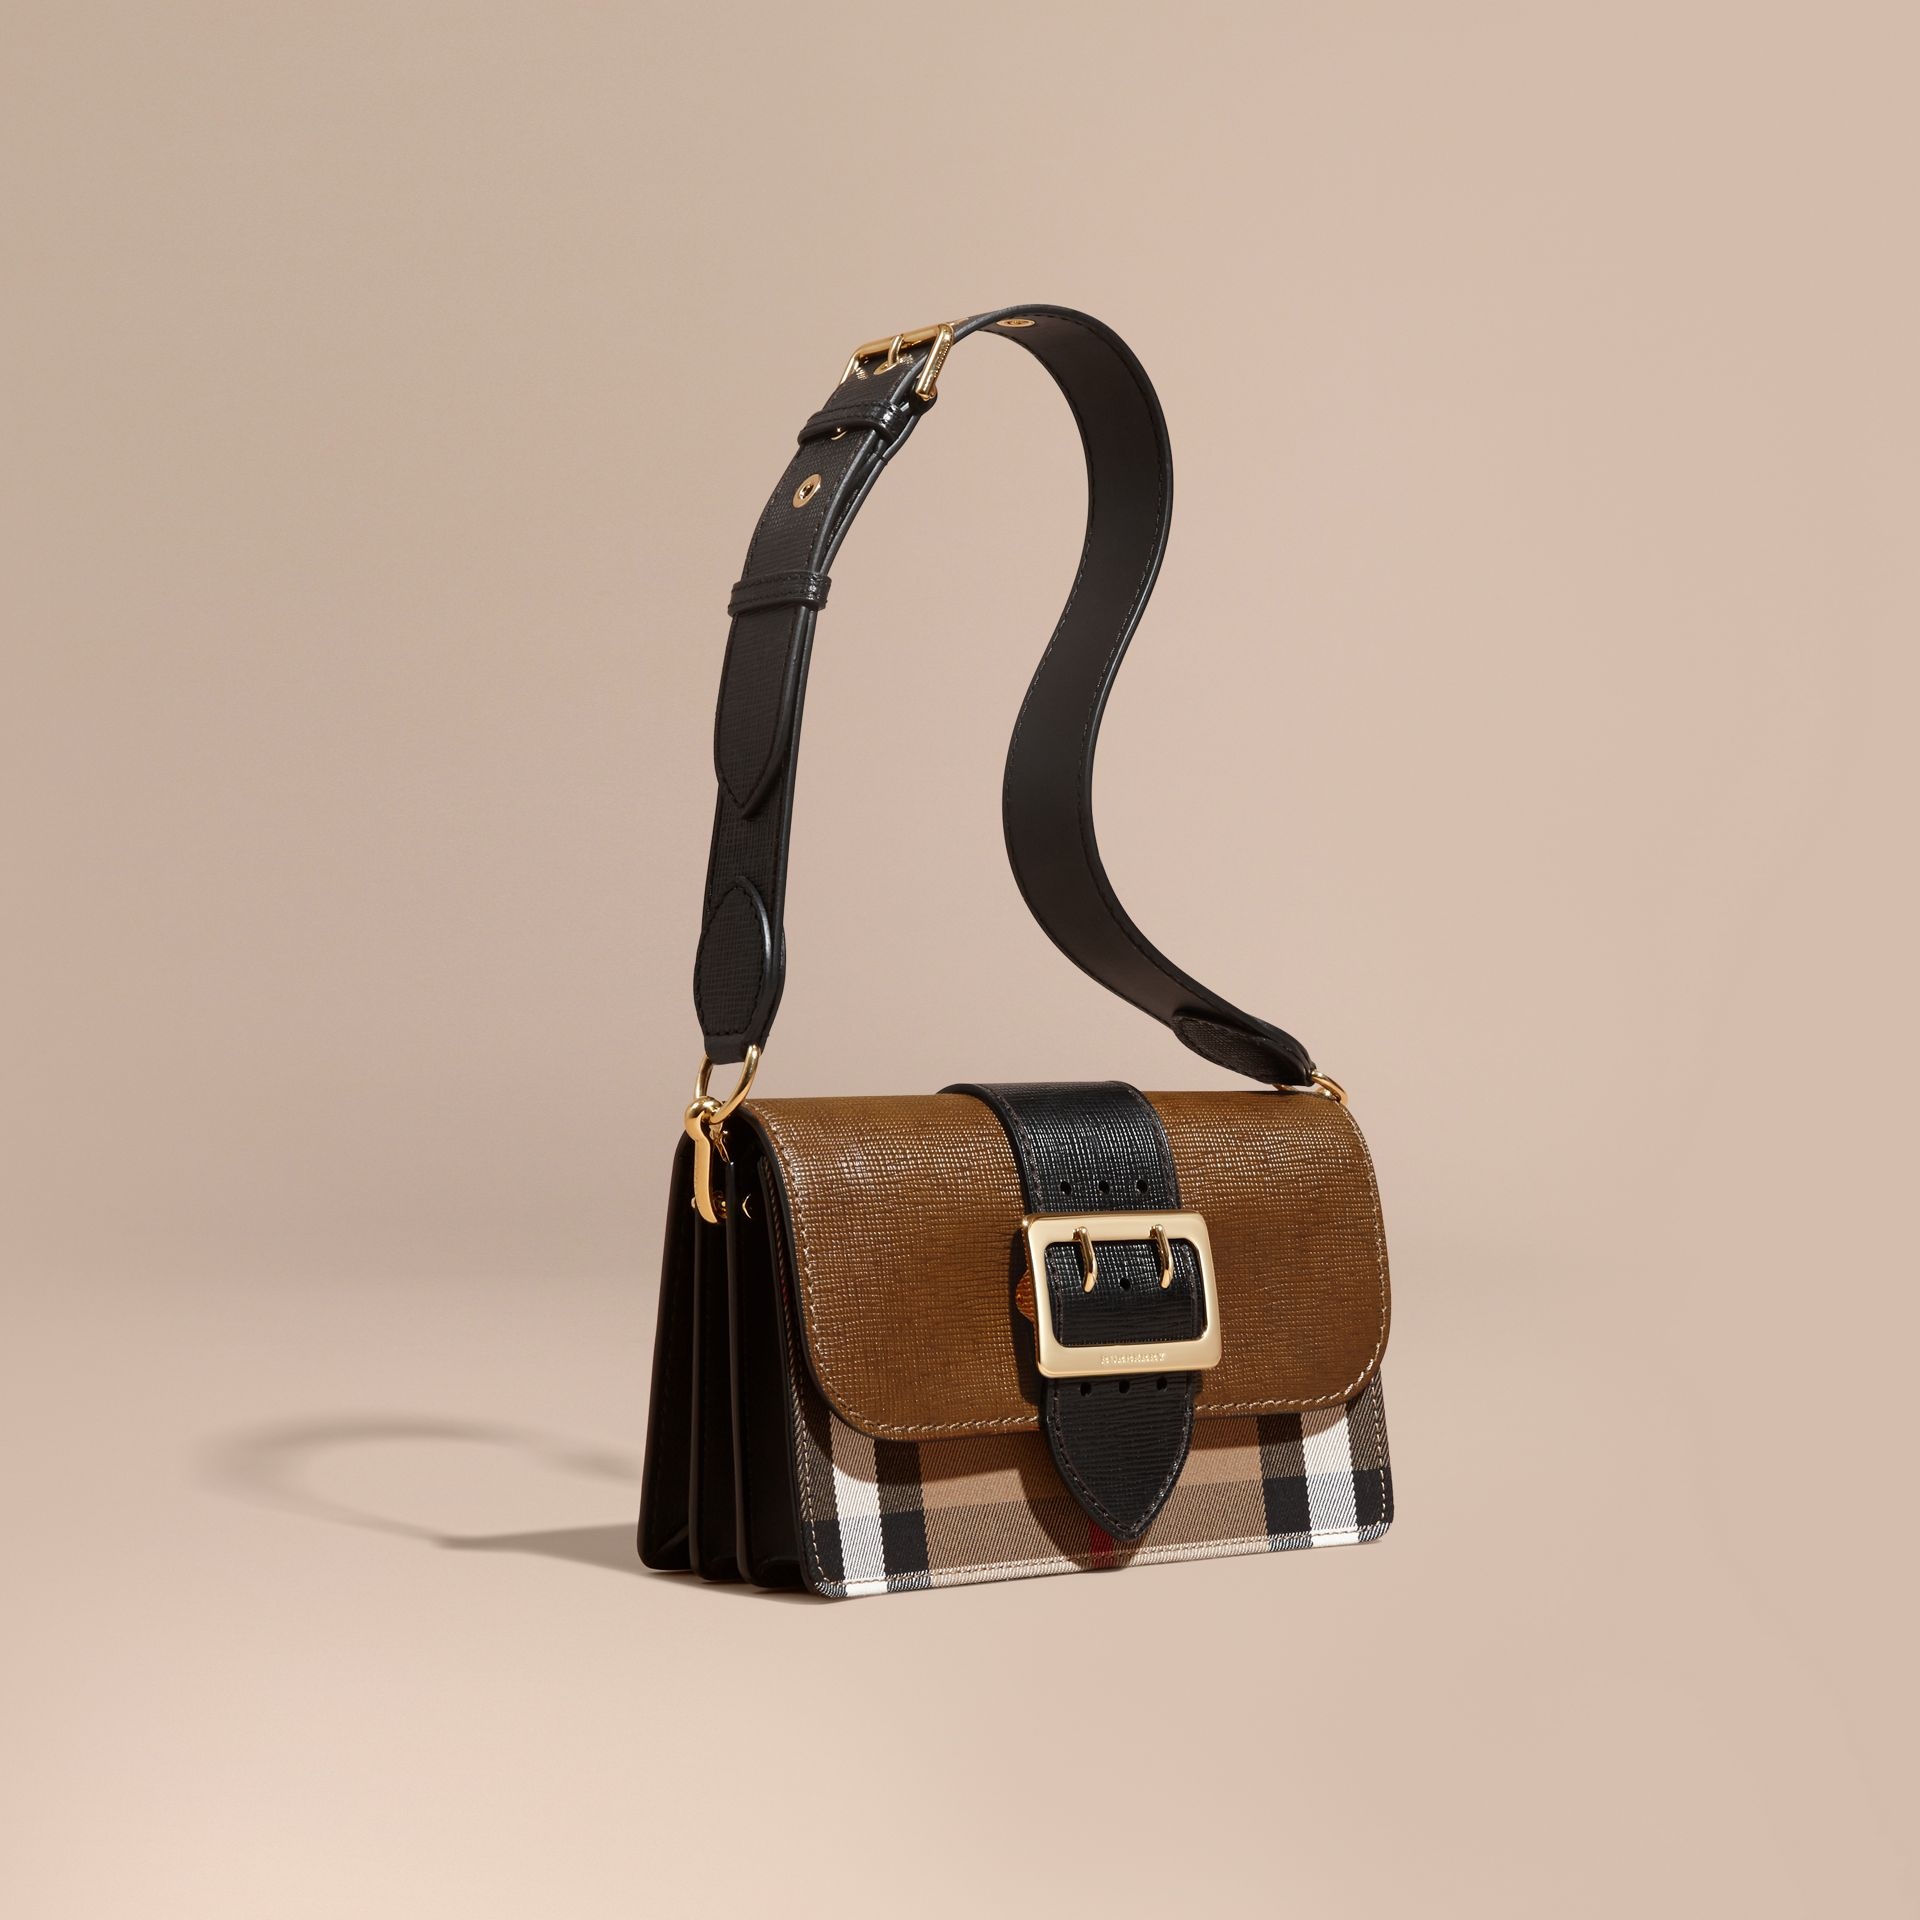 Tan/black The Medium Buckle Bag in House Check and Textured Leather Tan/black - gallery image 1